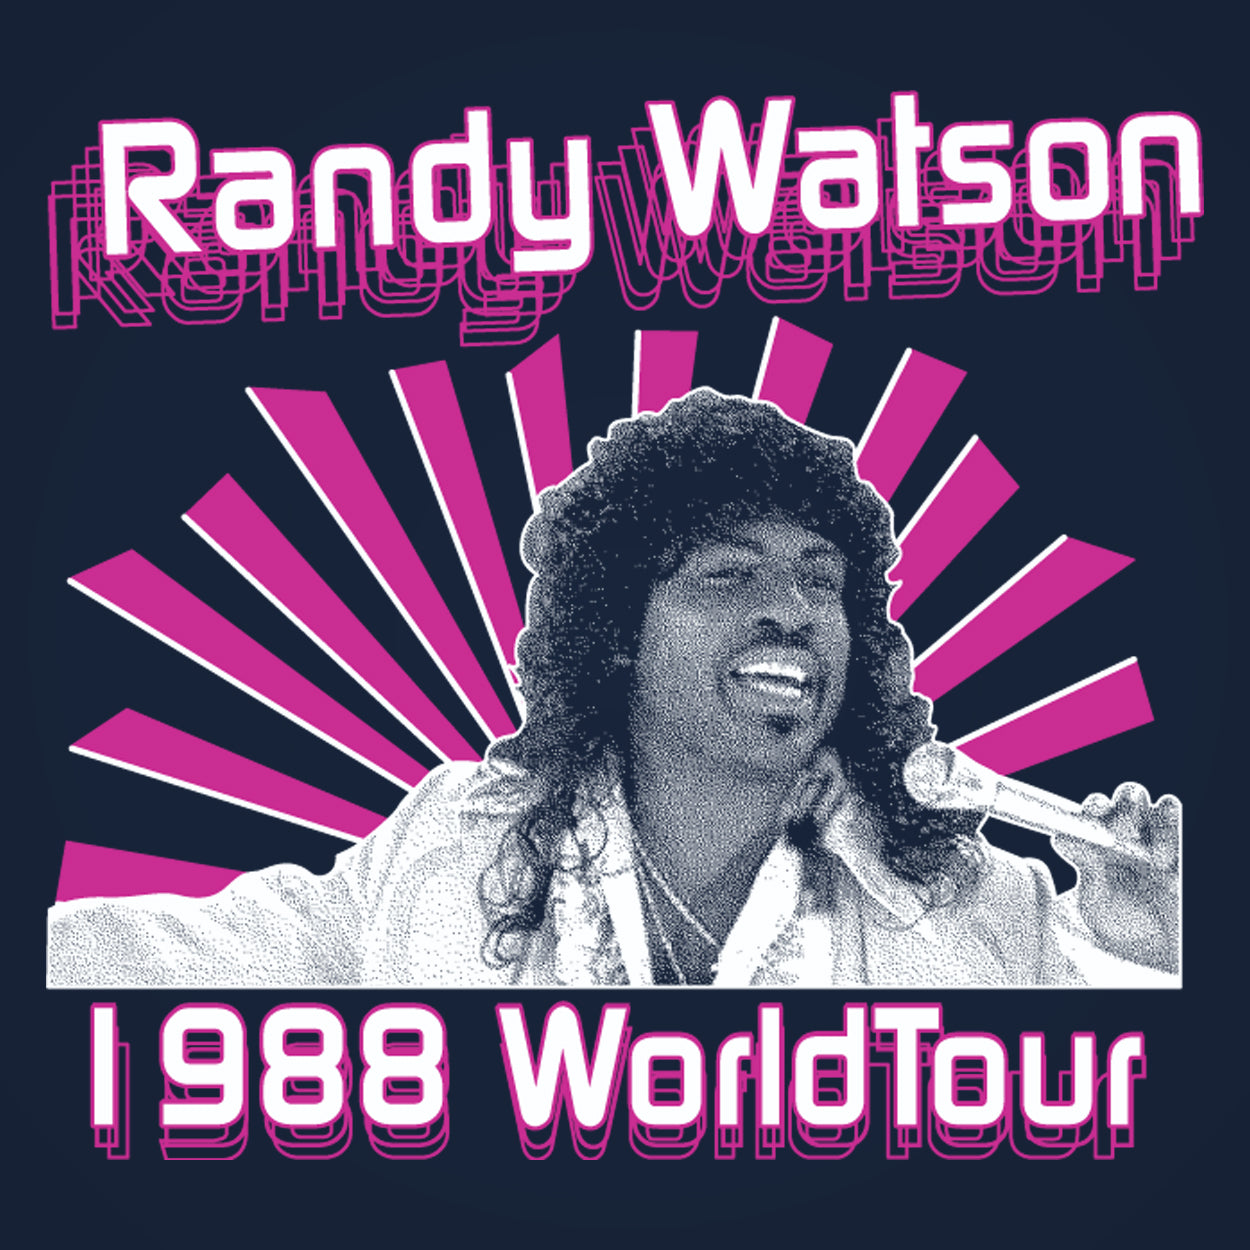 Randy Watson 1988 World Tour